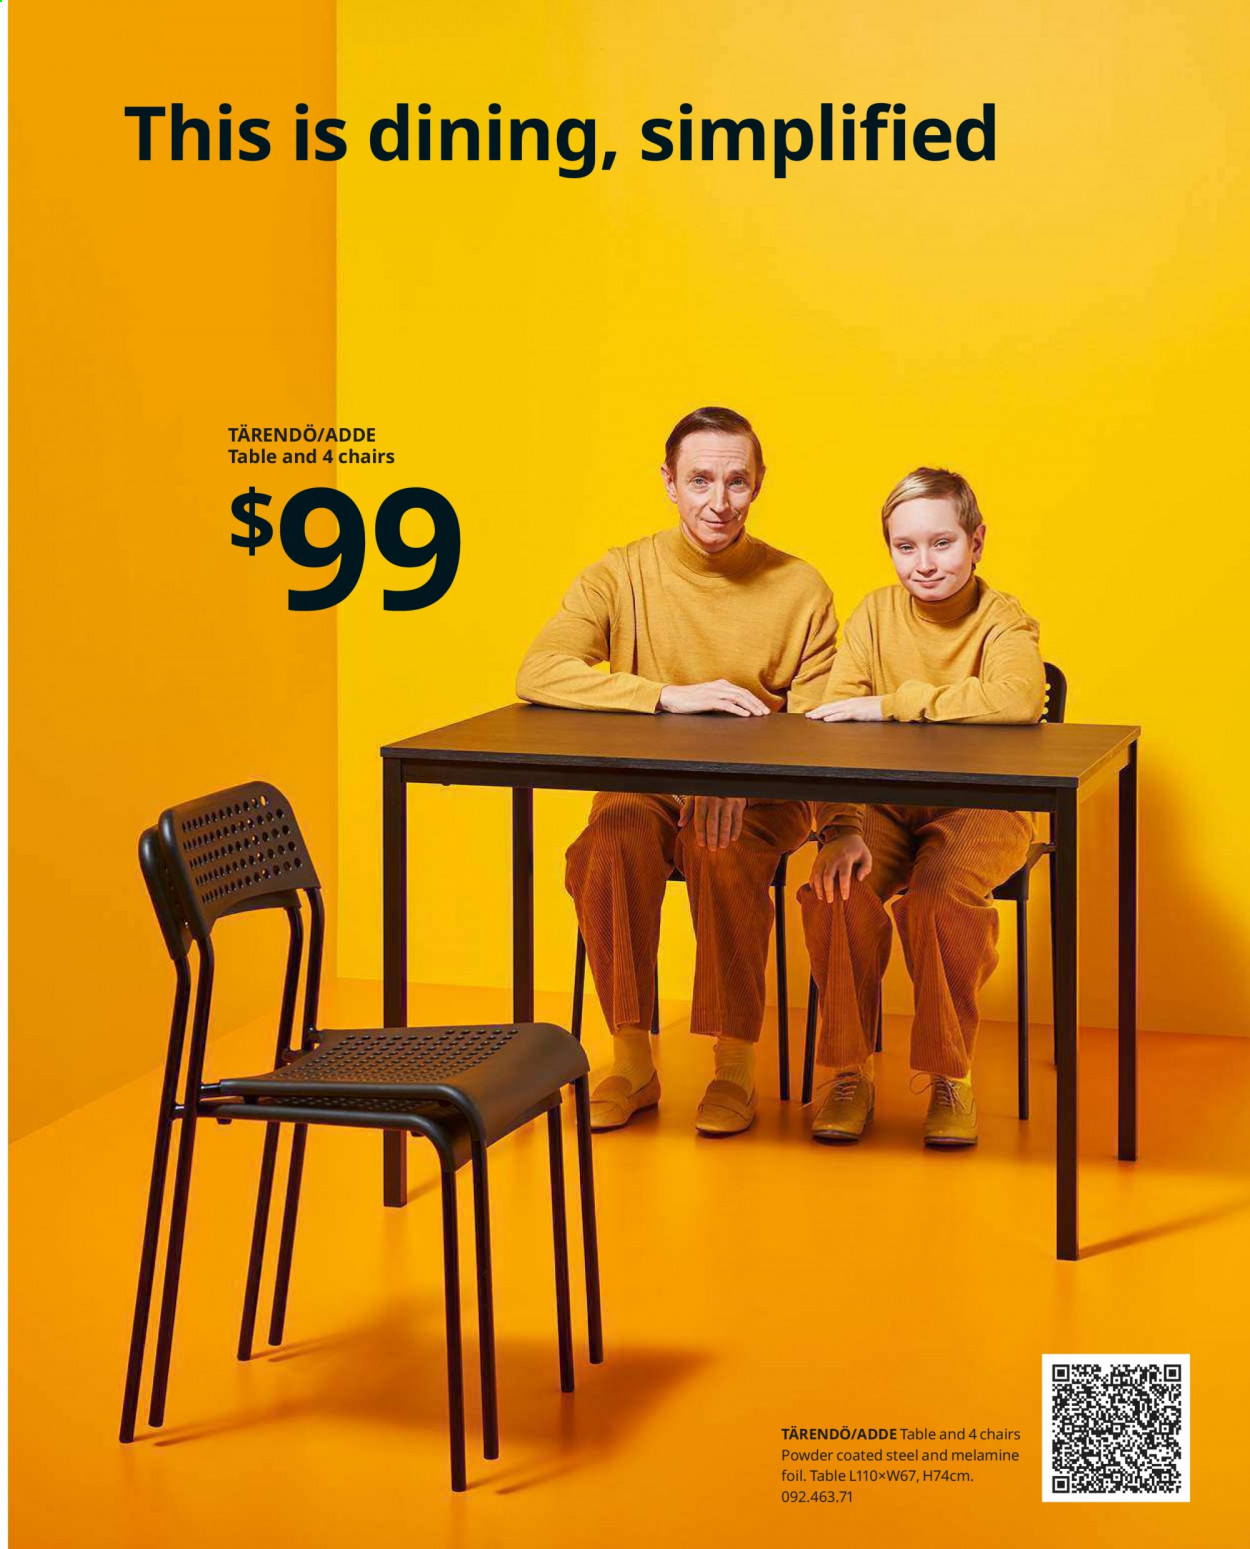 IKEA offer  - Sales products - extendable table, fork, knife, mug, spoon, table, chair, plate, powder, cutlery set. Page 173.